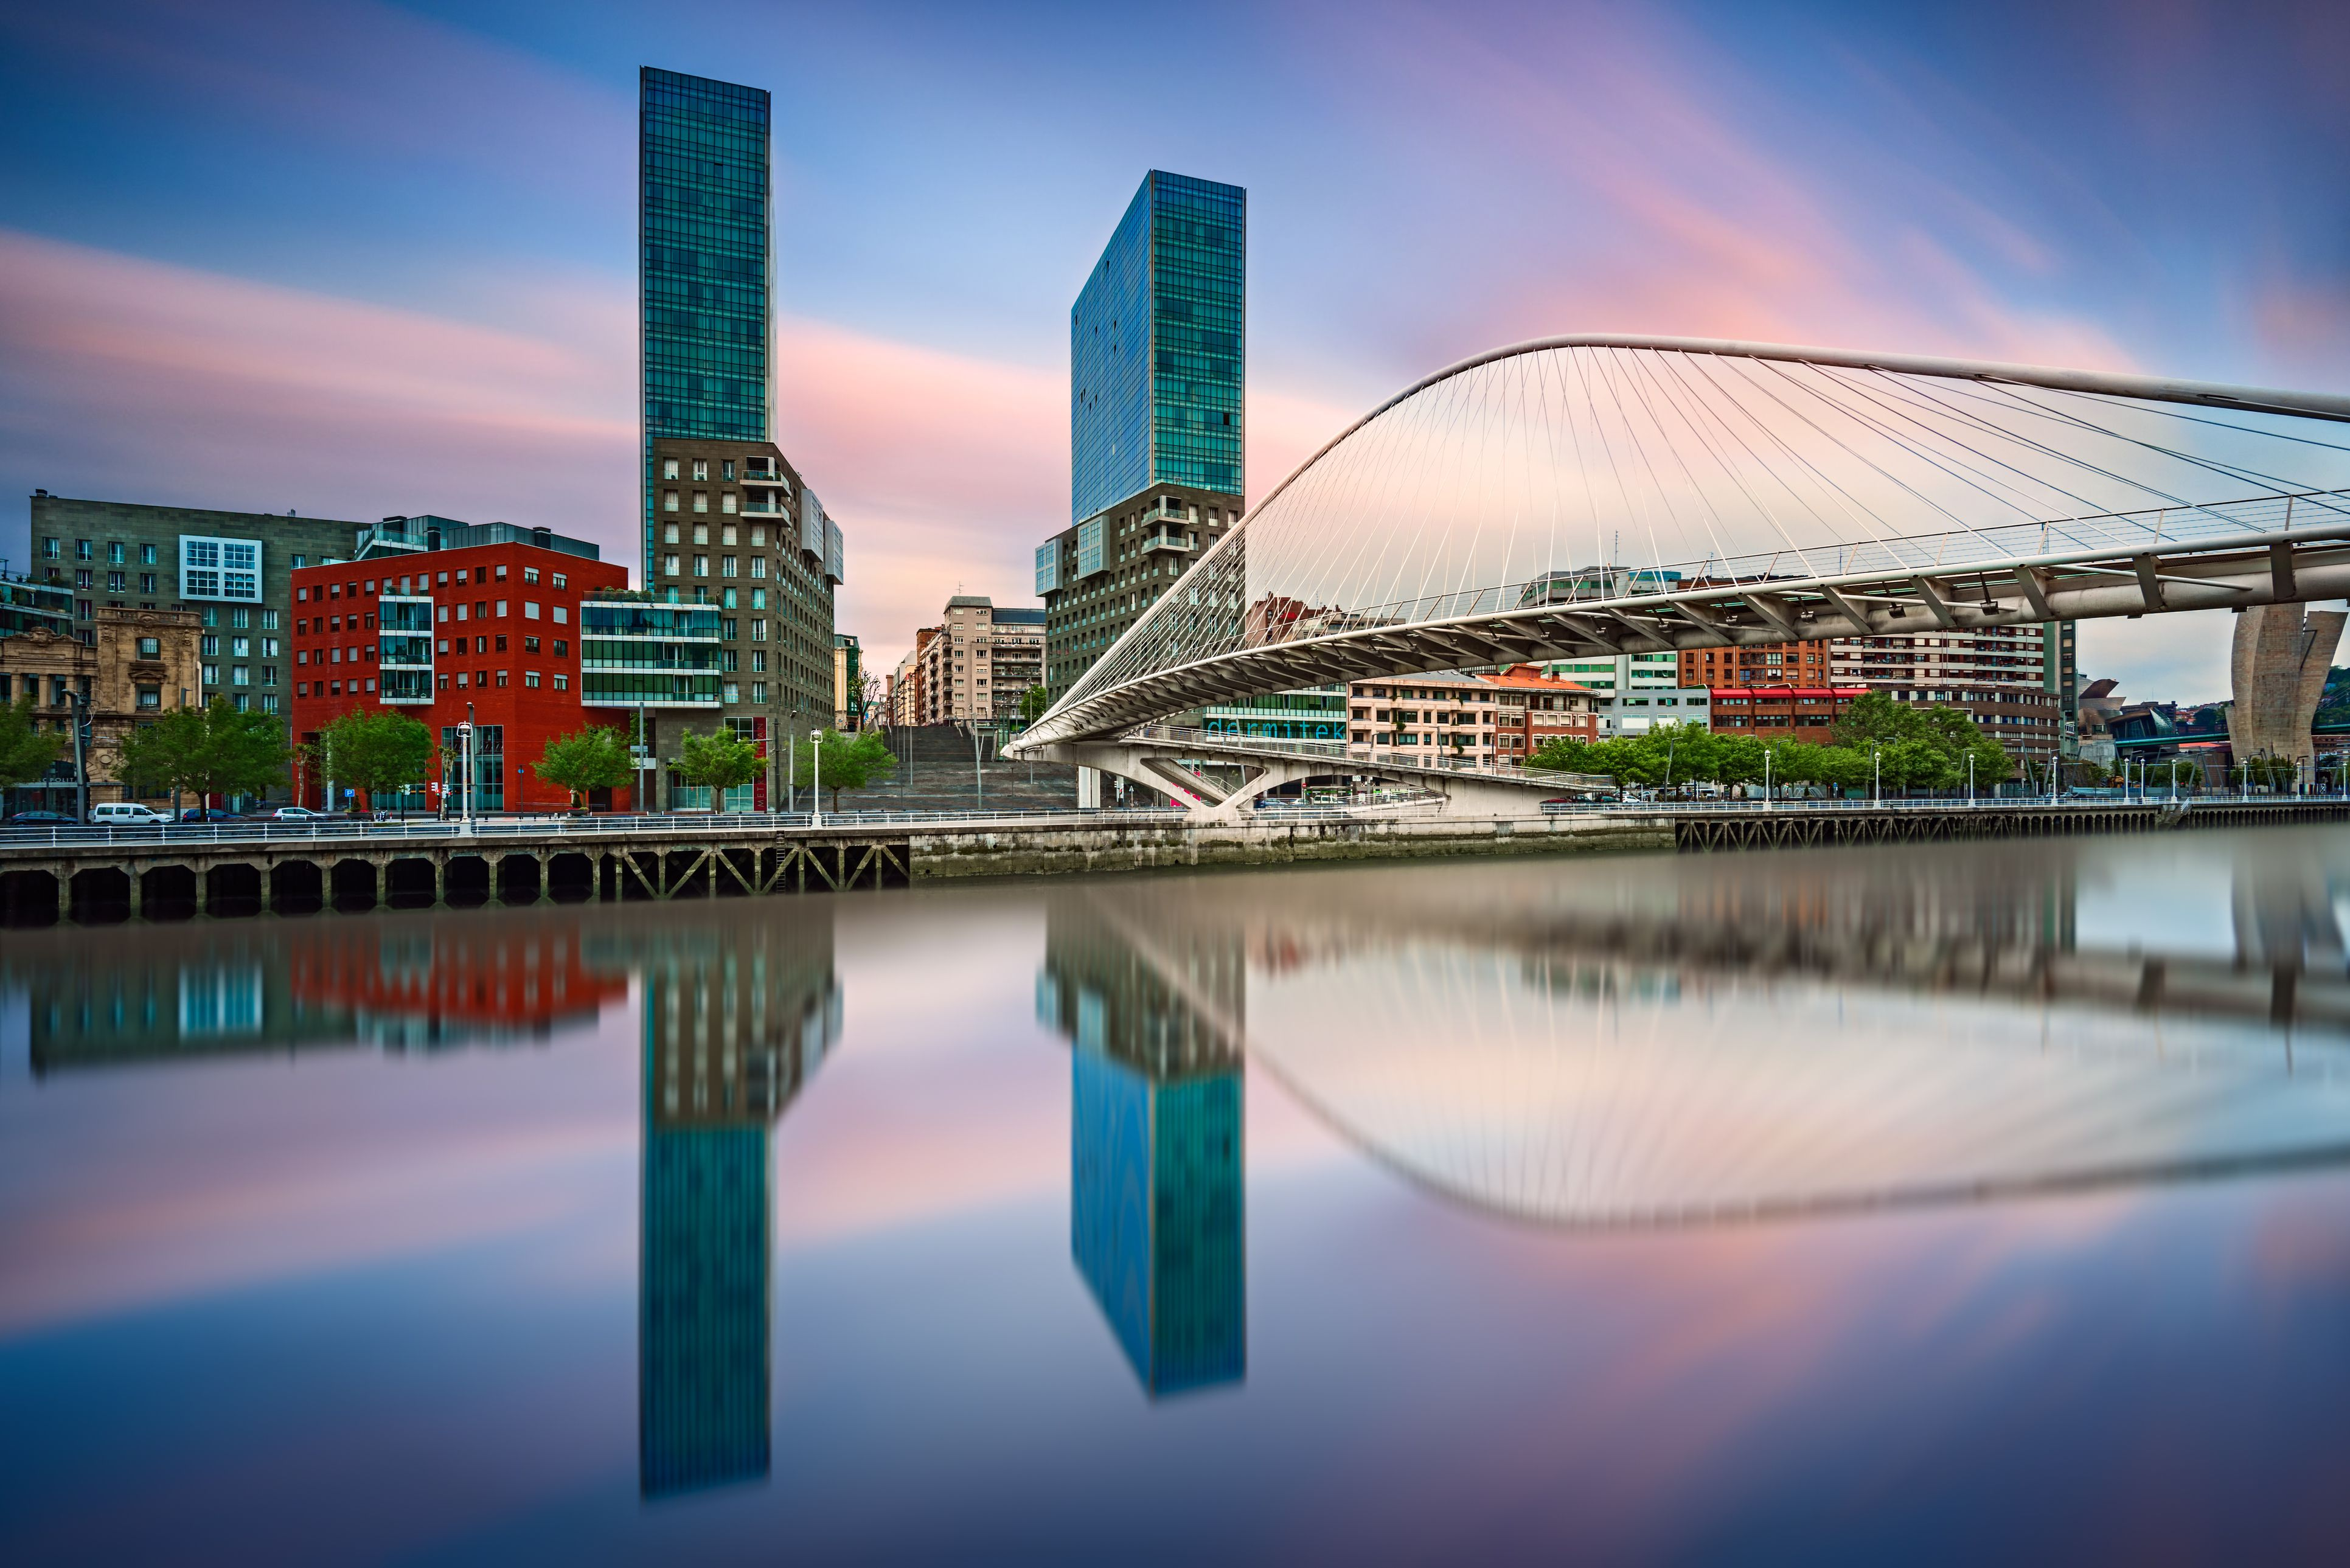 Rooms: How To Get To And From Bilbao To Pamplona, Spain